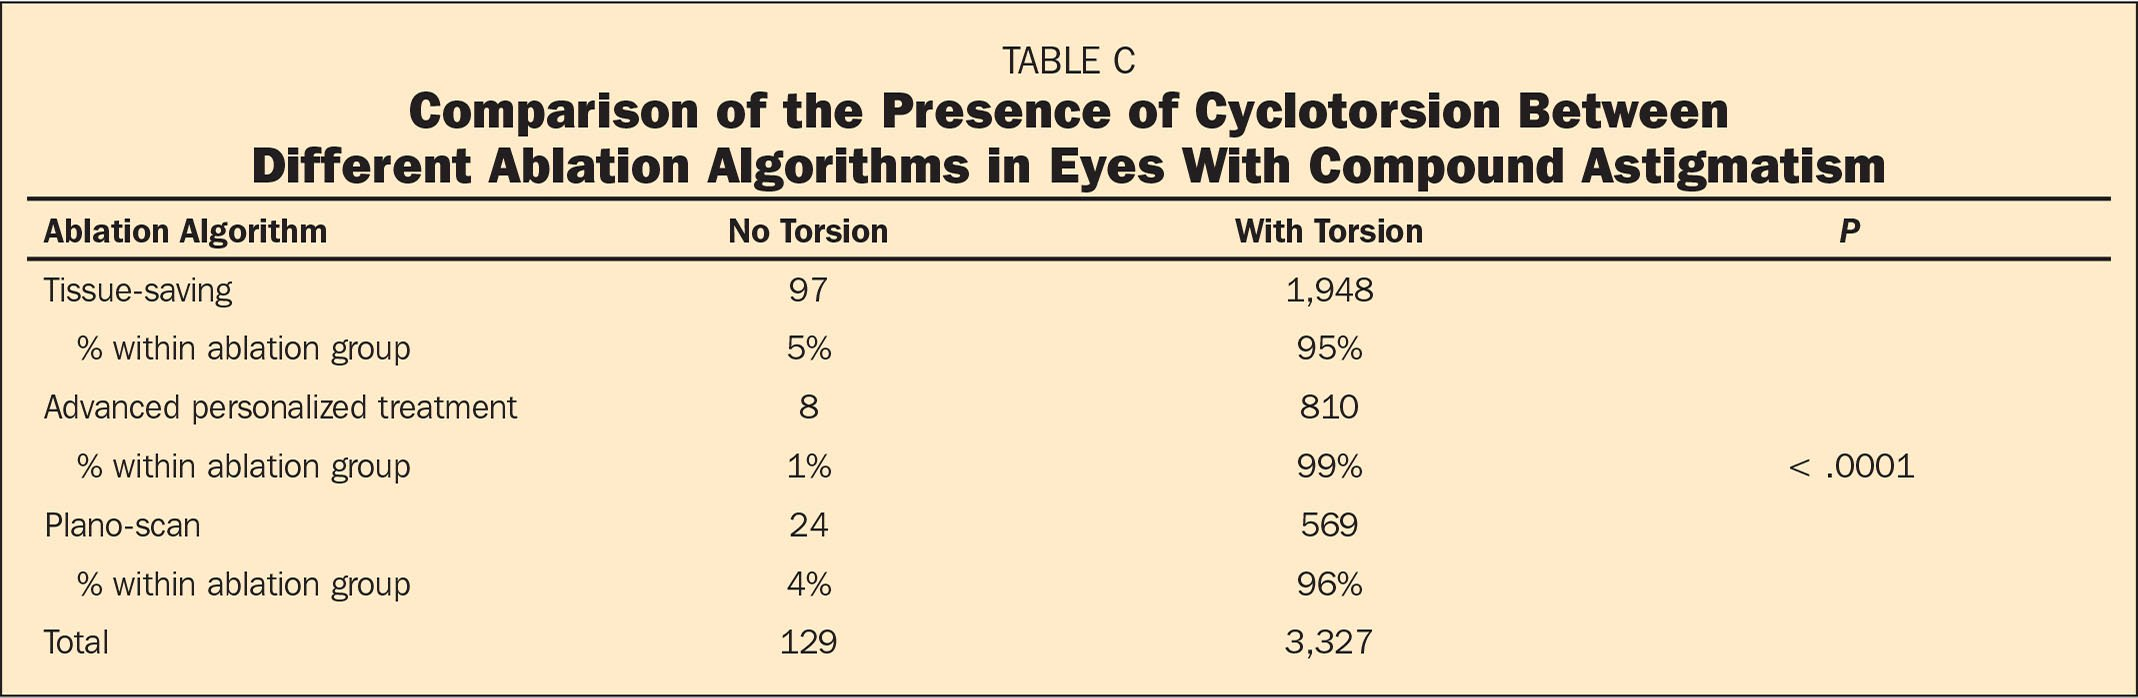 Comparison of the Presence of Cyclotorsion Between Different Ablation Algorithms in Eyes With Compound Astigmatism